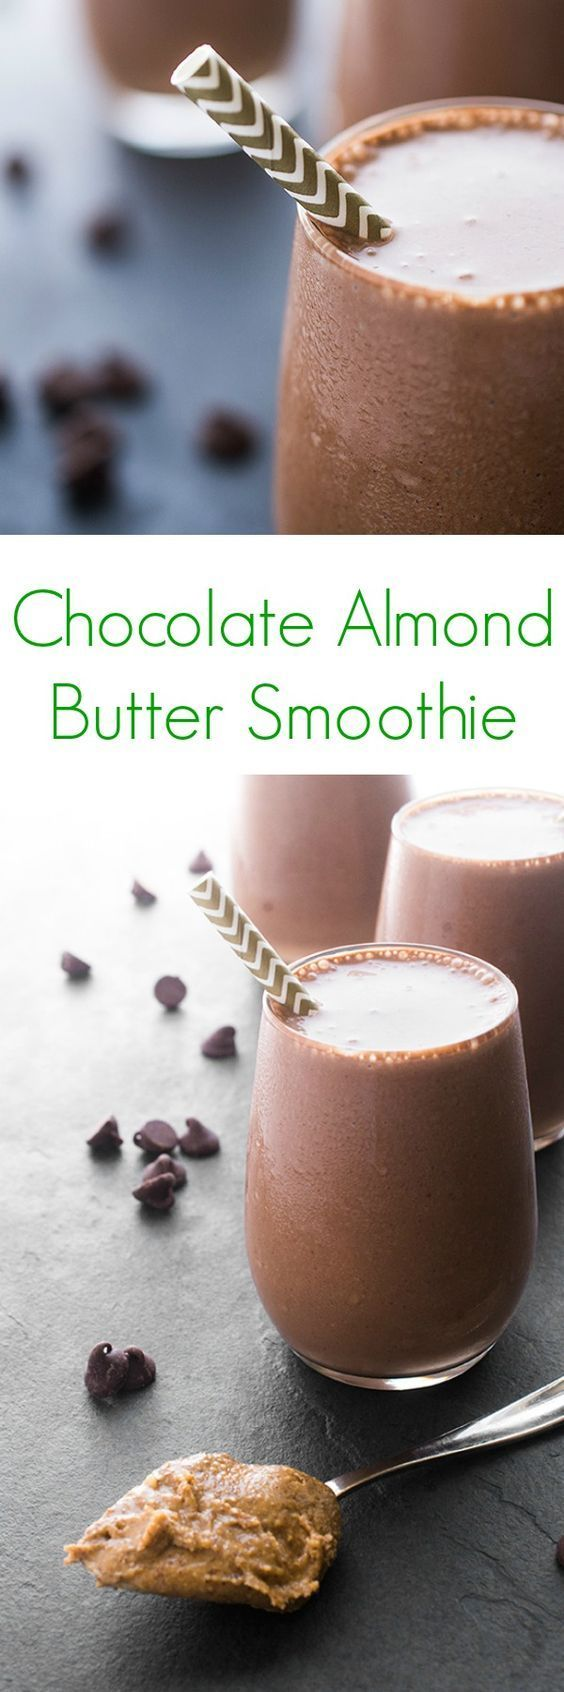 Chocolate Almond Butter Smoothie - Made with cocoa powder and almond butter, this smoothie is thick, creamy and protein-packed.